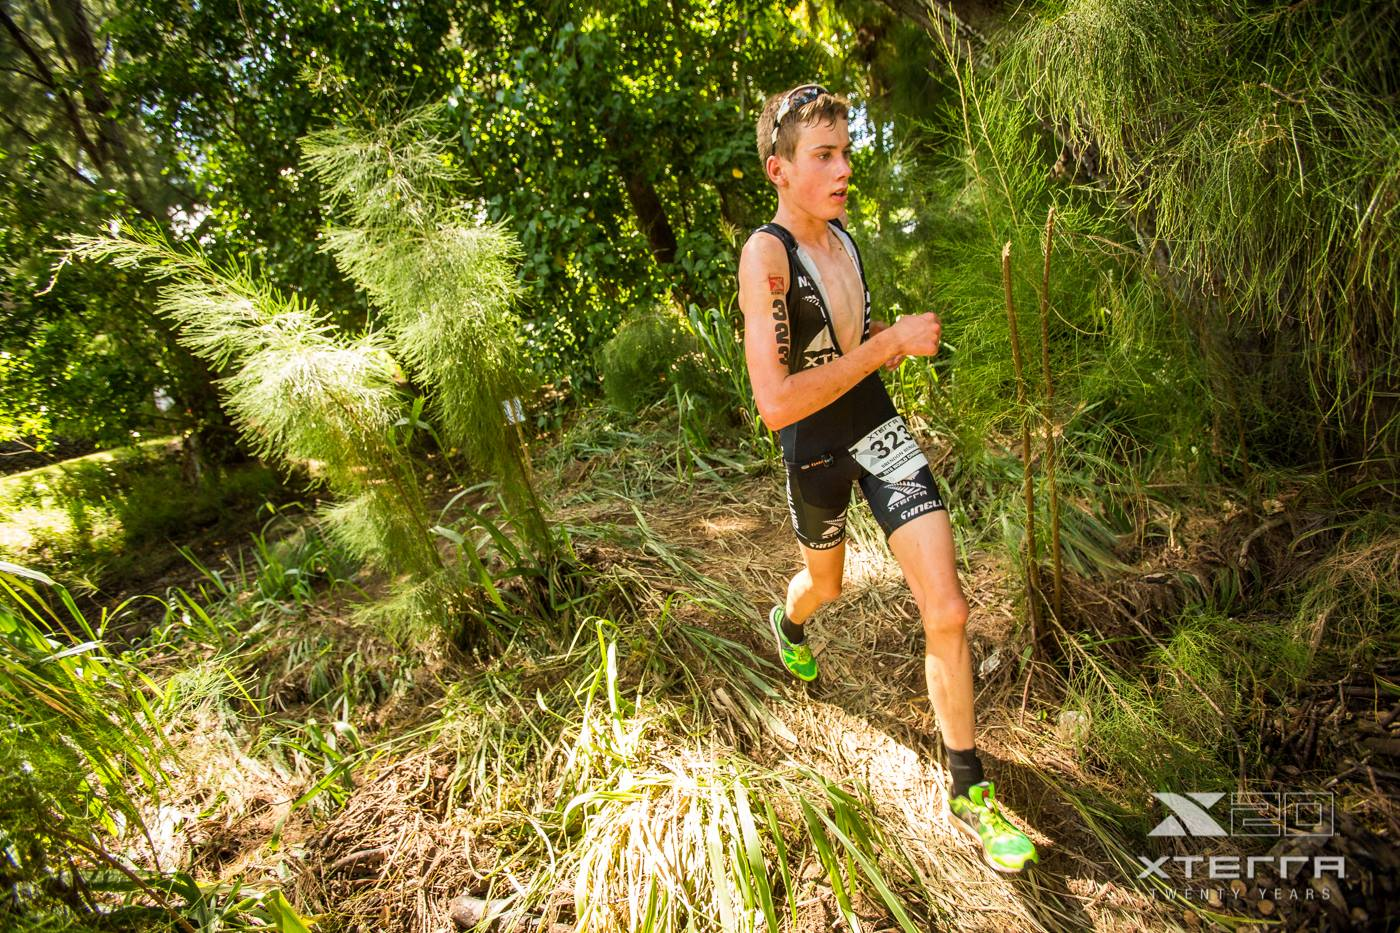 XTERRA_WORLD_CHAMPIONSHIP_2015_00074